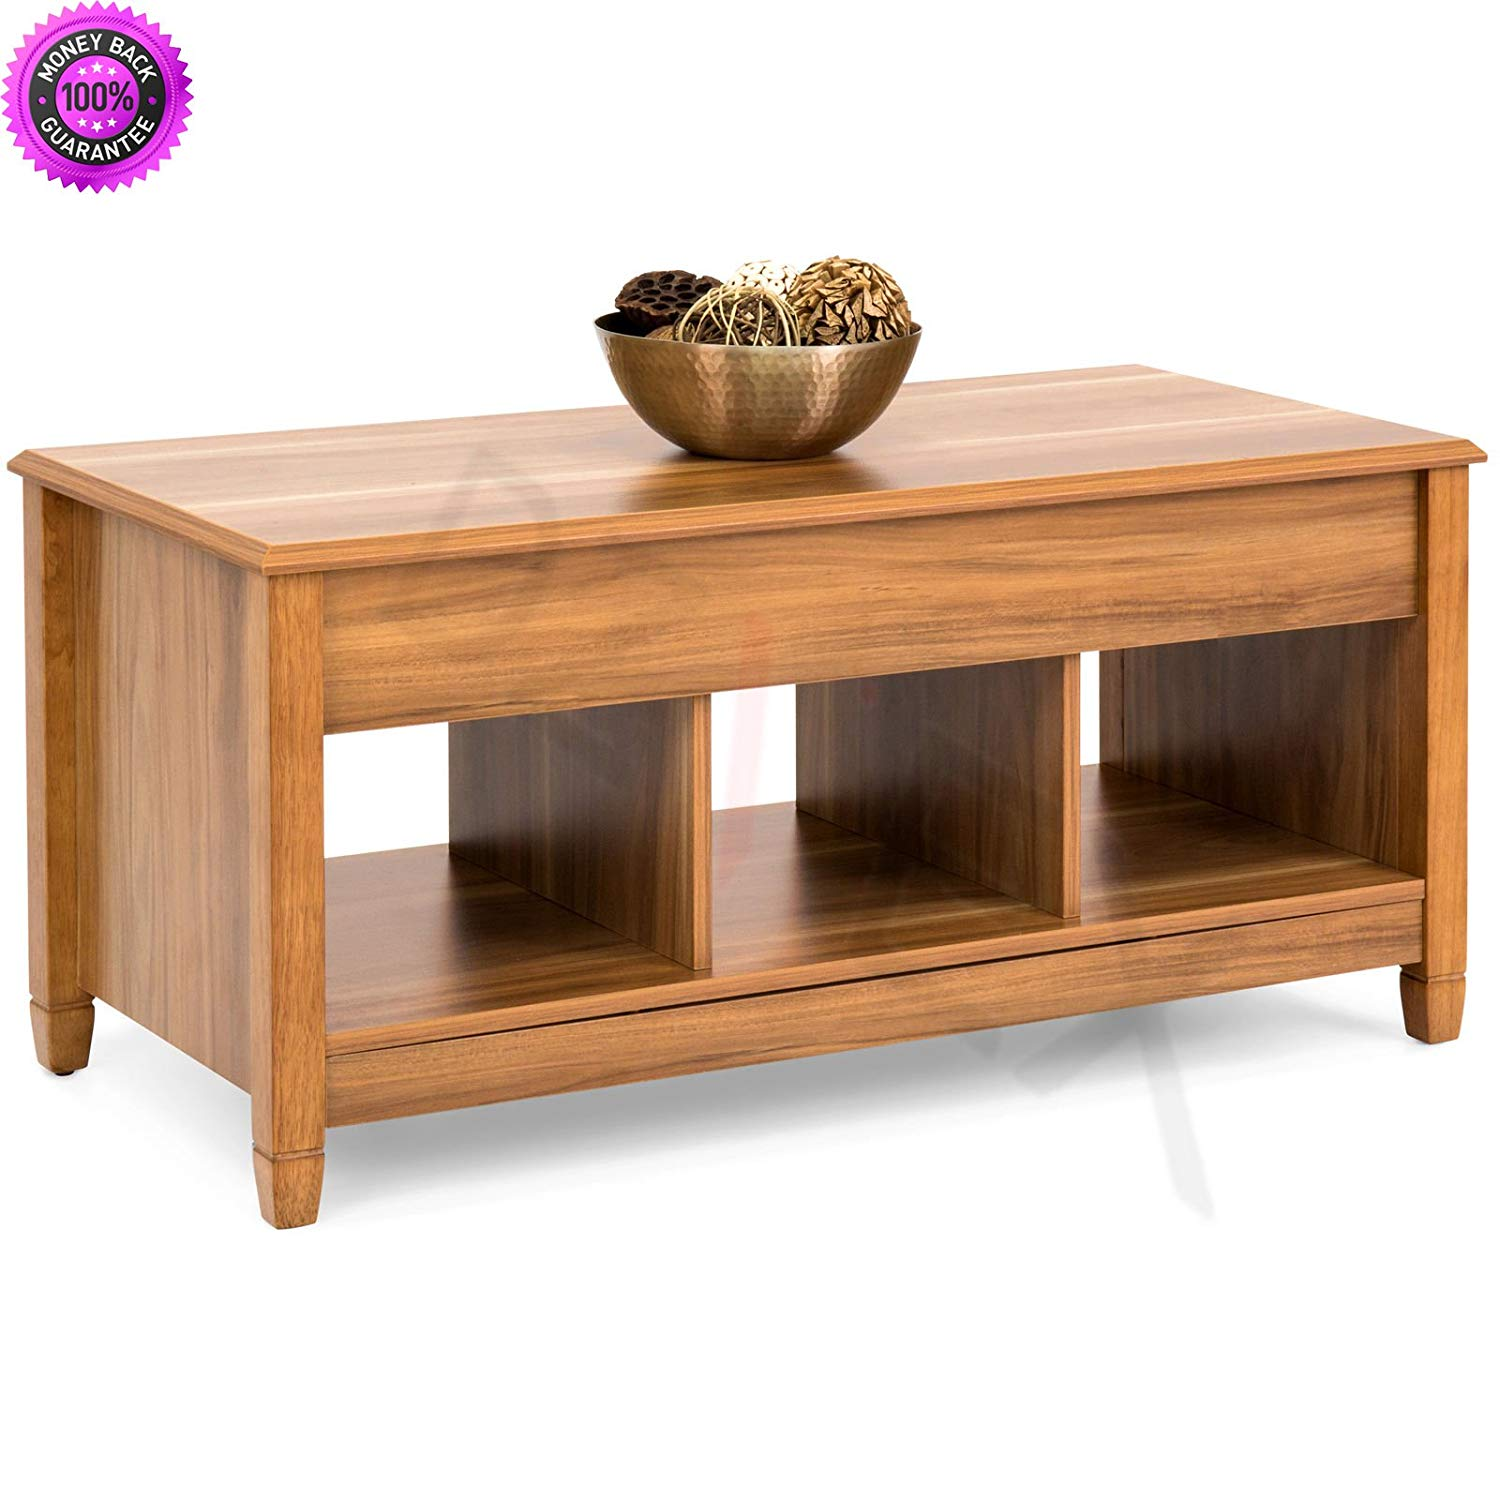 DzVeX_Lift Top Coffee Table w/Hidden Compartment And Lift Tabletop (Golden Oak) And kitchen tables folding tables accent tables furniture furniture tables wood tables small tables plastic tables